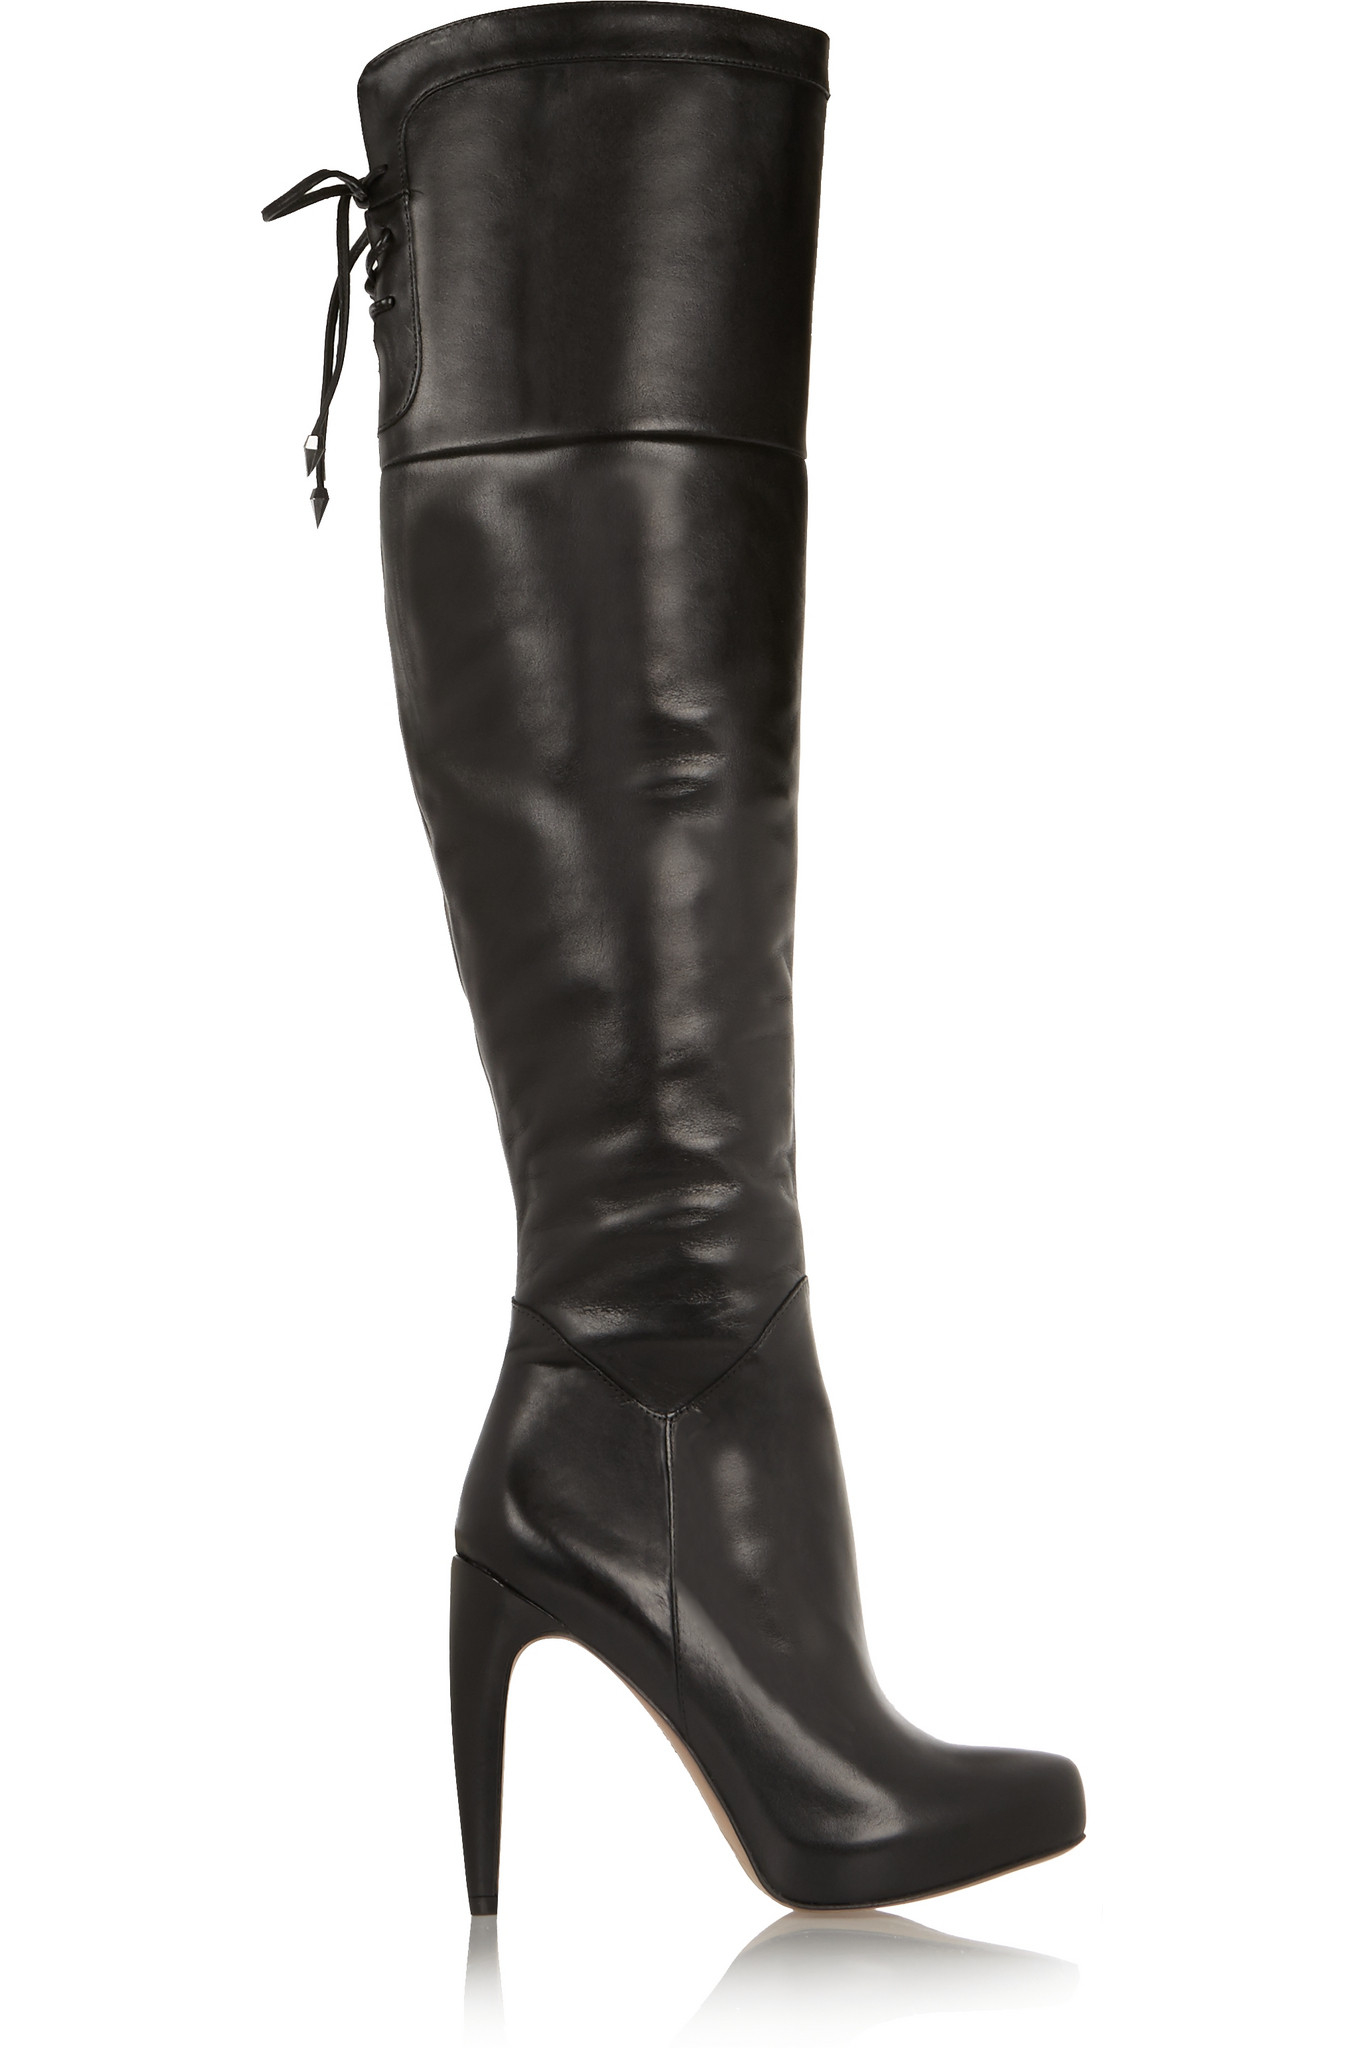 cdc32e392cb0f0 Sam Edelman Kayla Leather Over-the-knee Boots in Black - Lyst